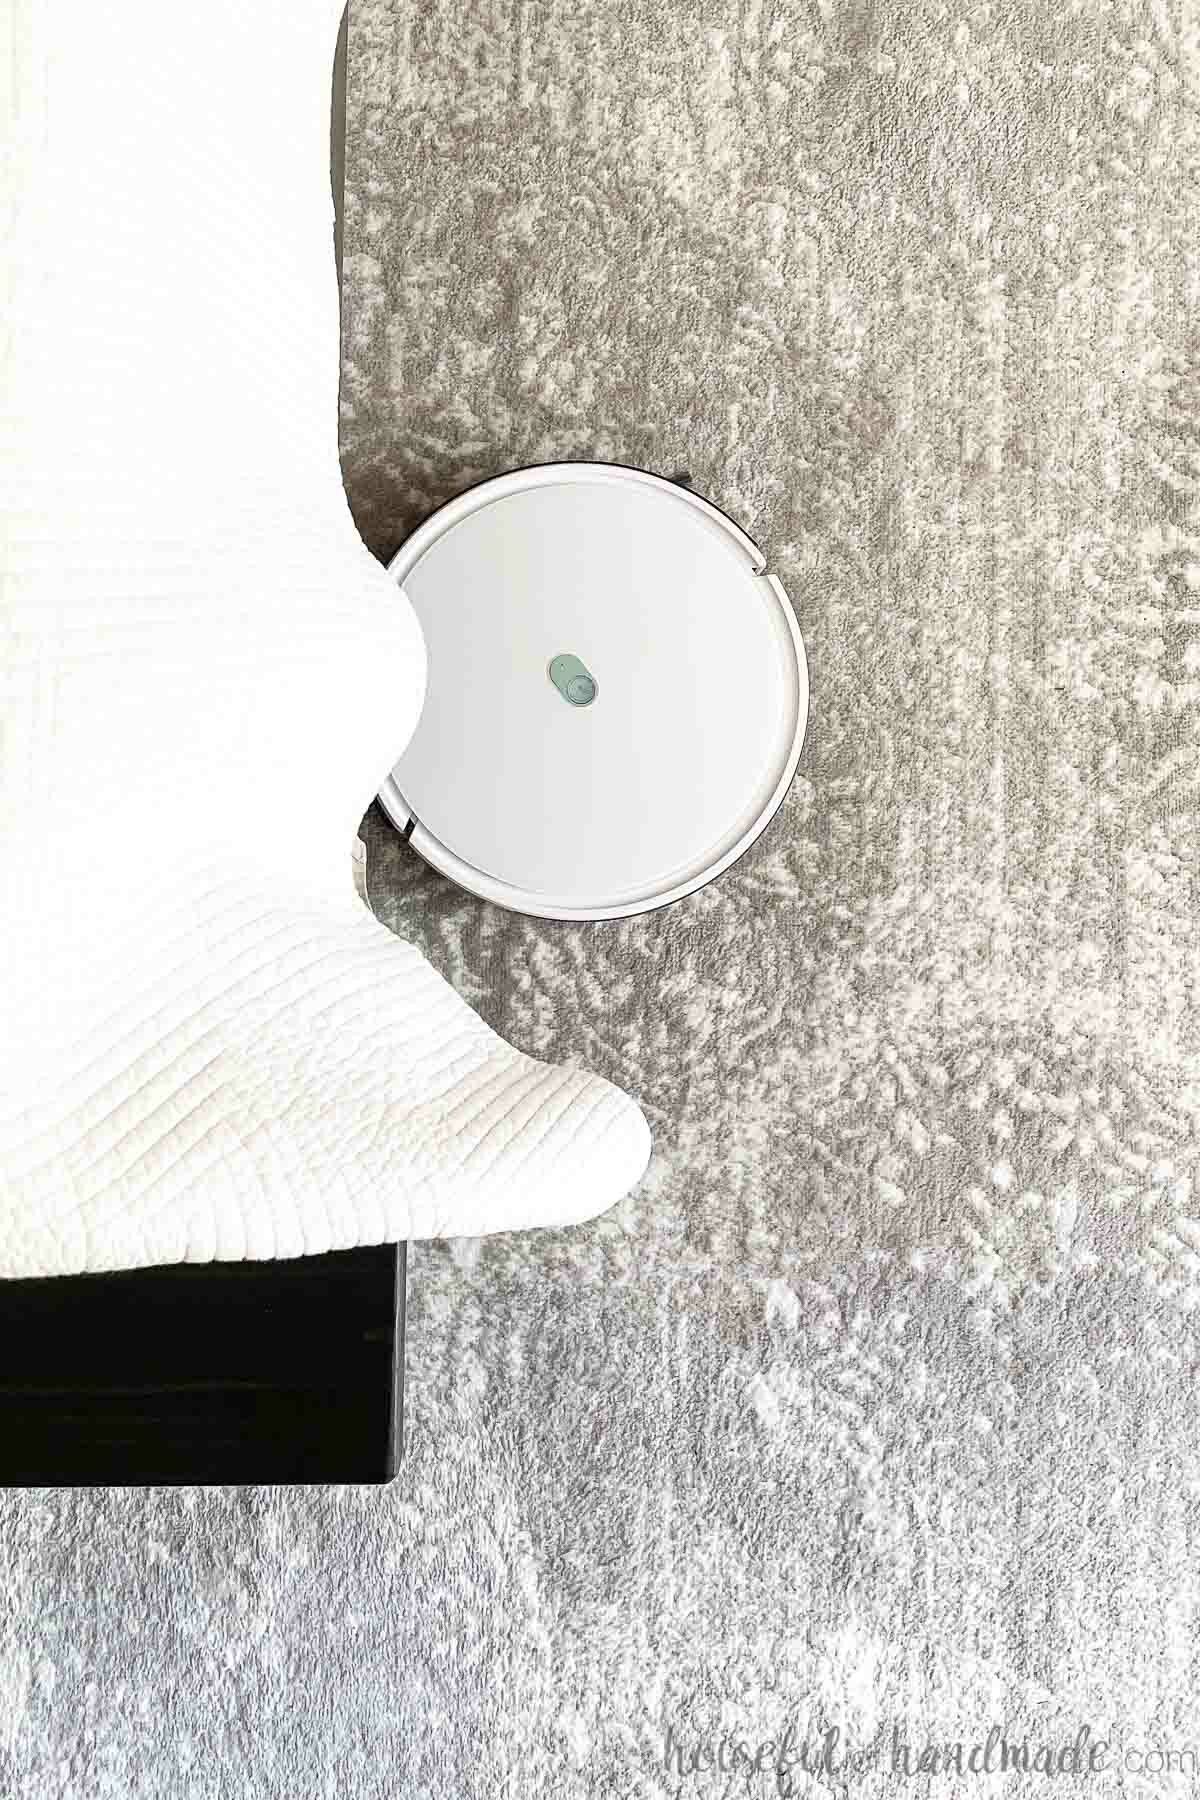 Top down view of a white robot vacuum cleaning a rug under a bed.